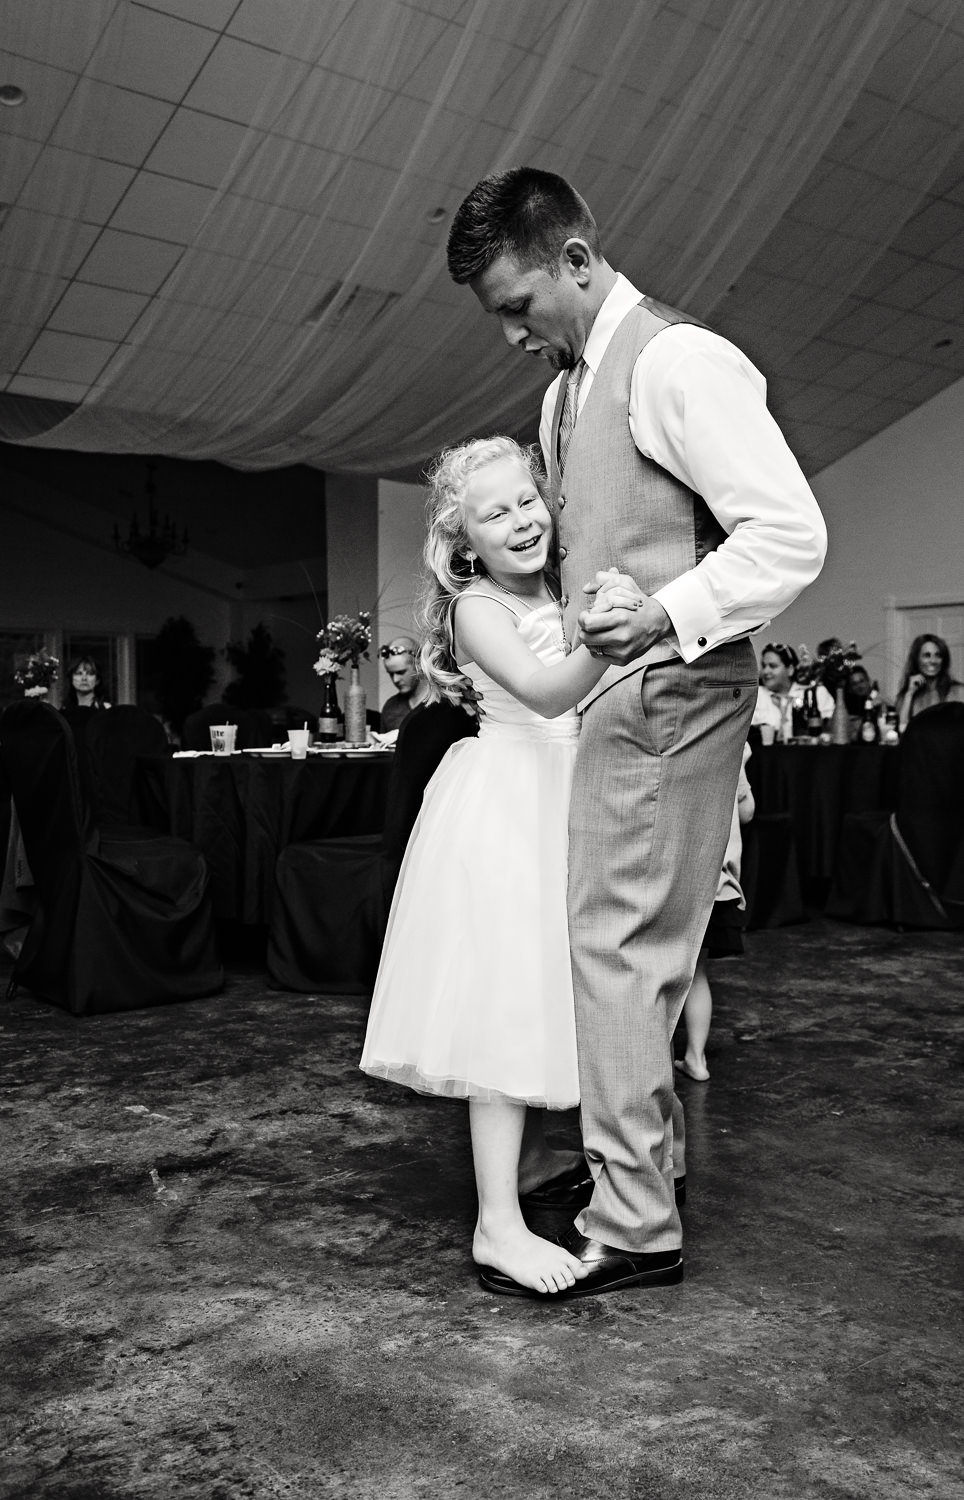 billings-montana-chanceys-wedding-reception-groom-dancing-with-baby-sister.jpg